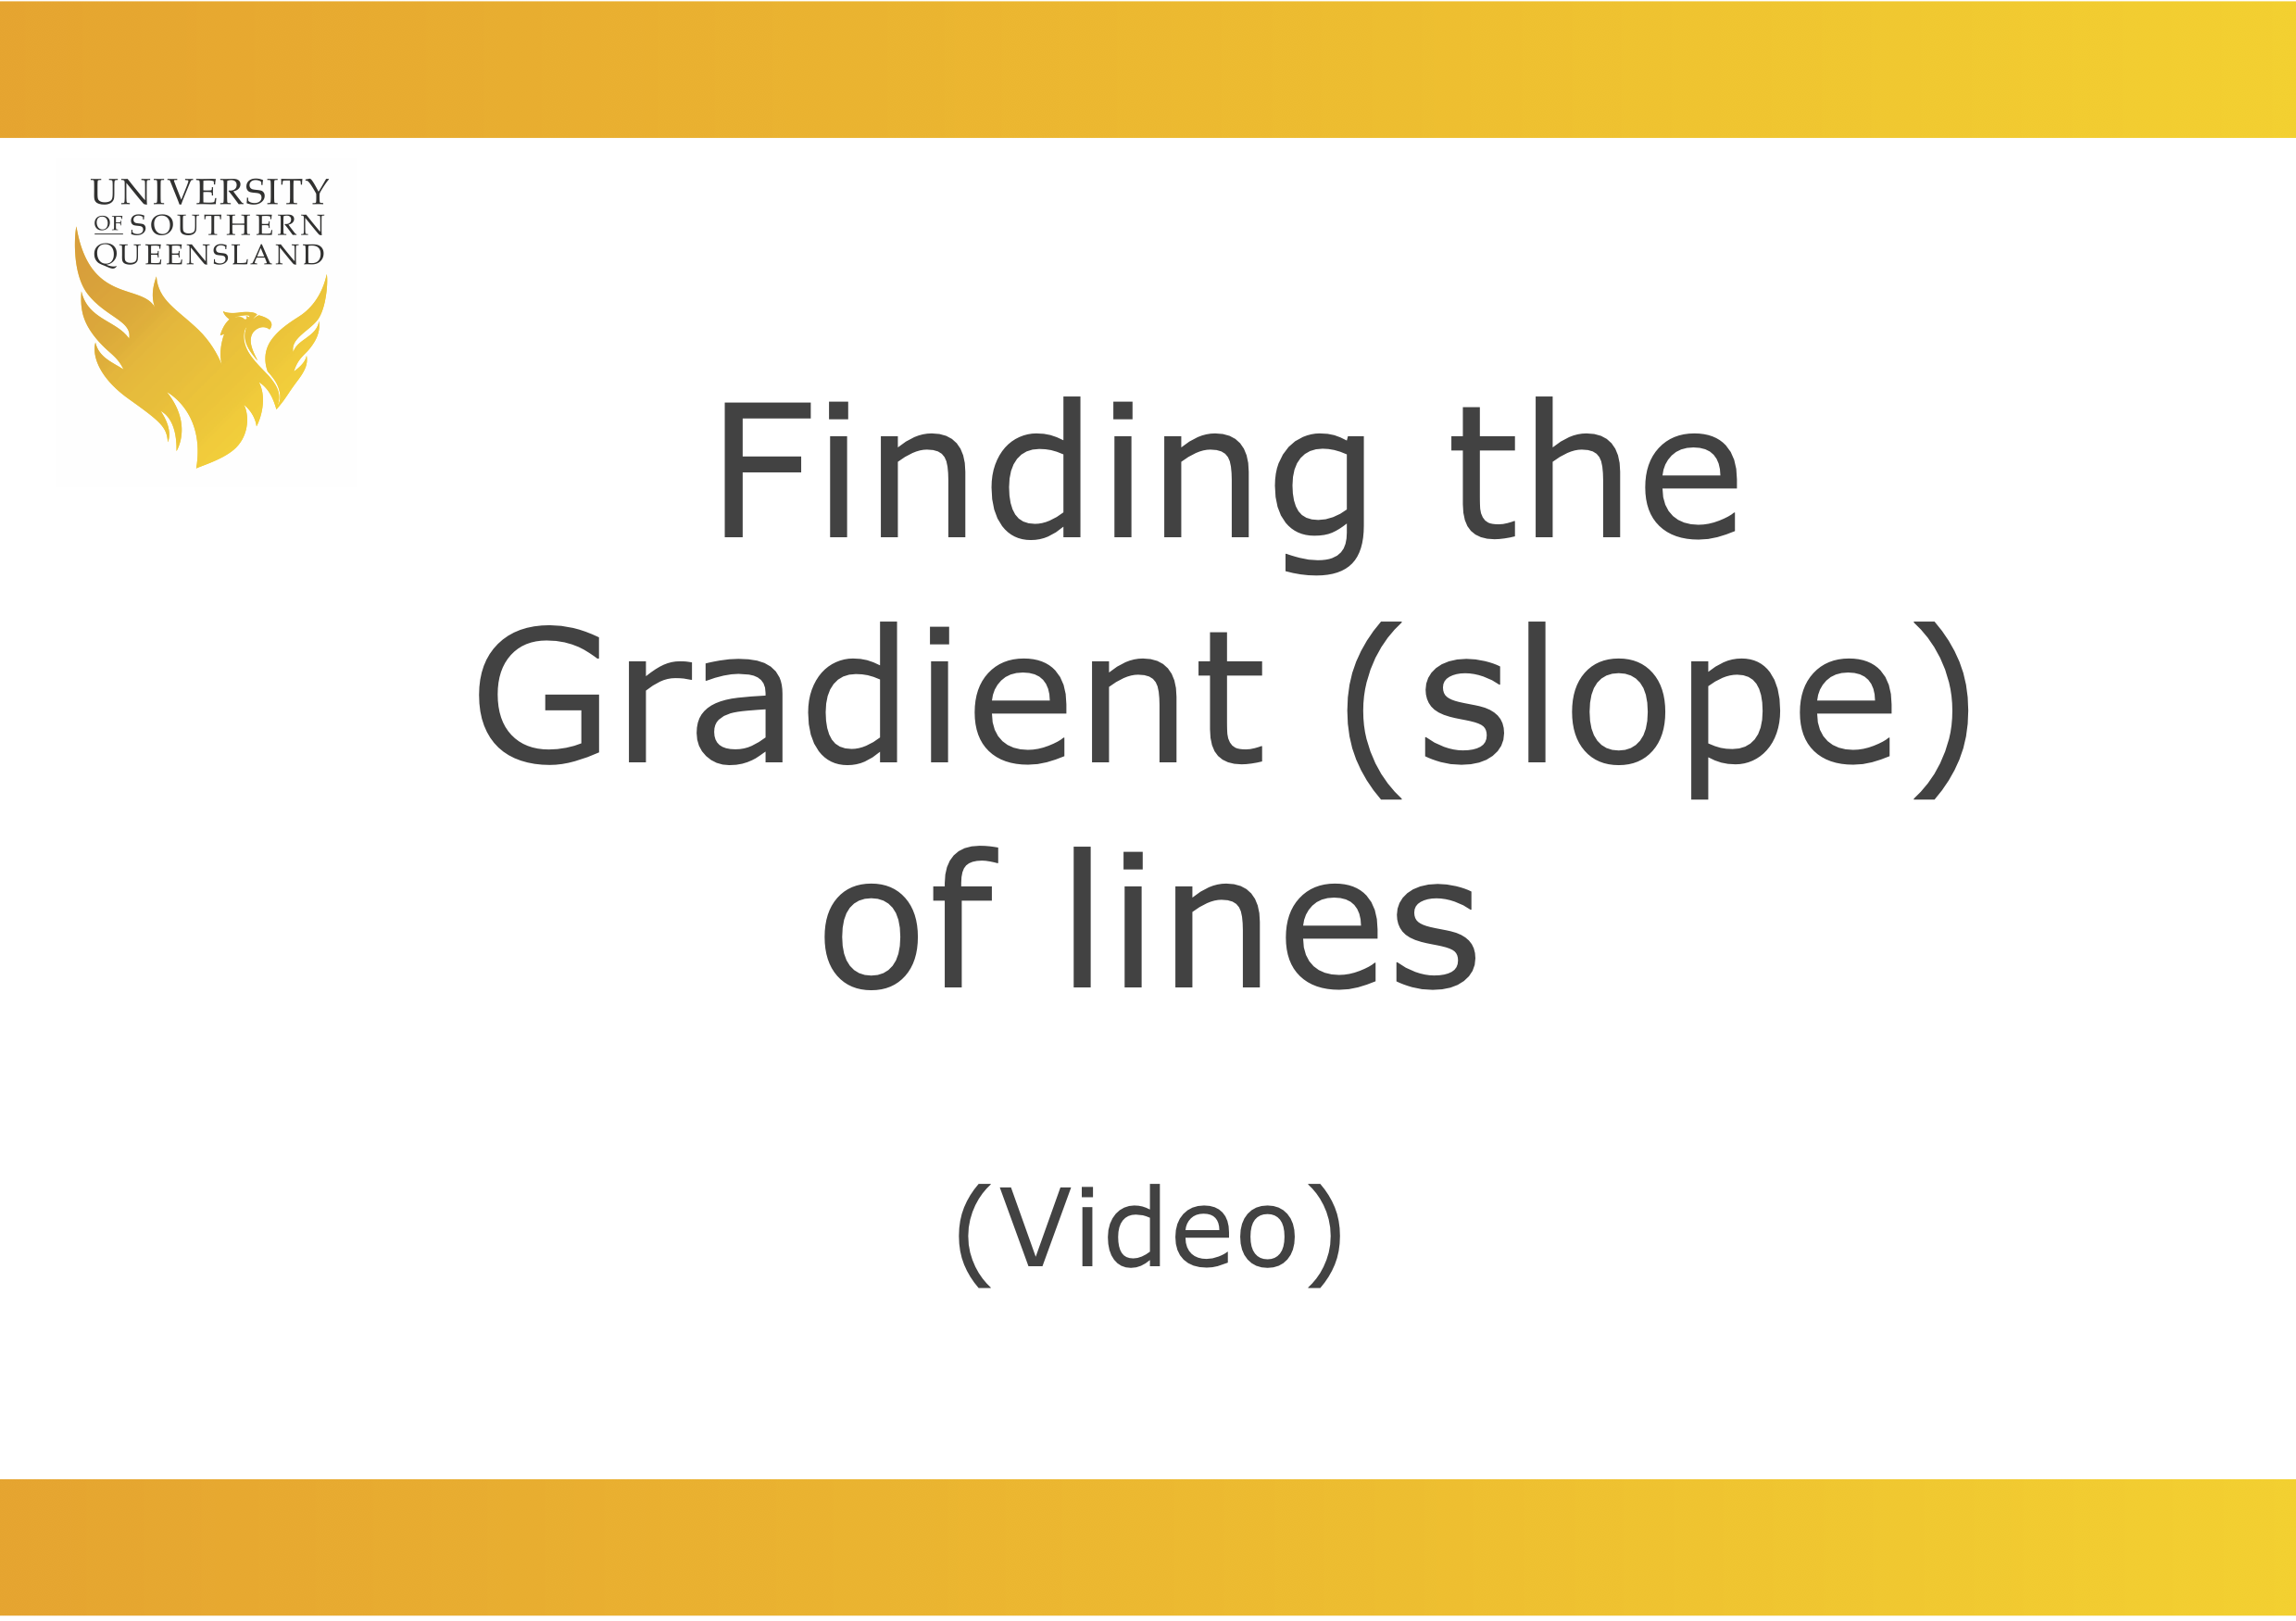 link to play the video for finding the gradient (slope) of straight (linear) lines